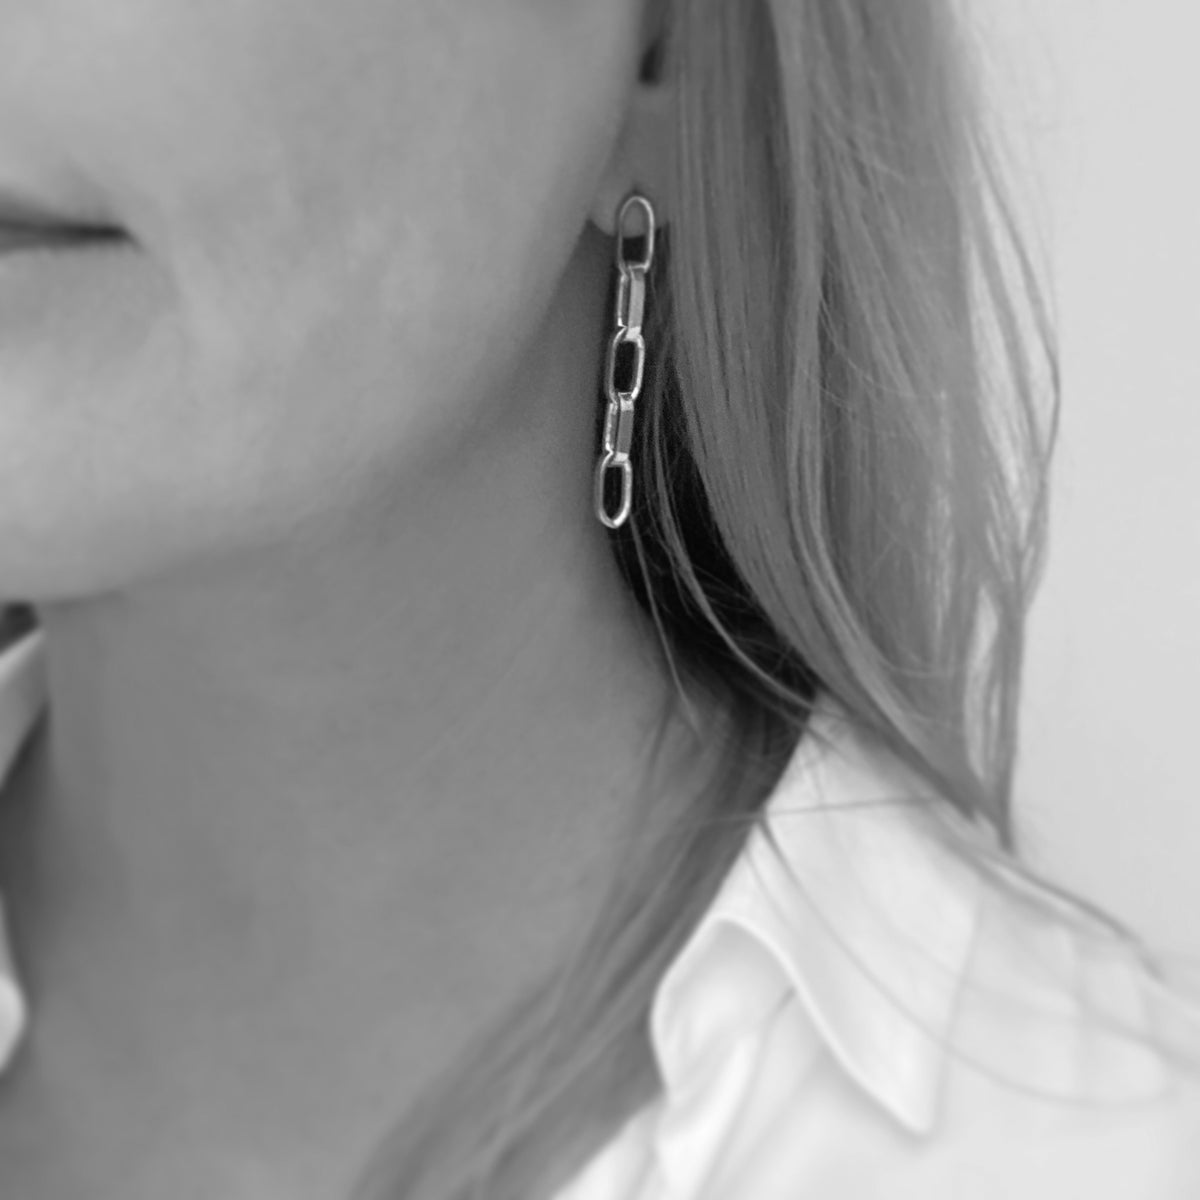 Image of Silver chunky chain-link earrings